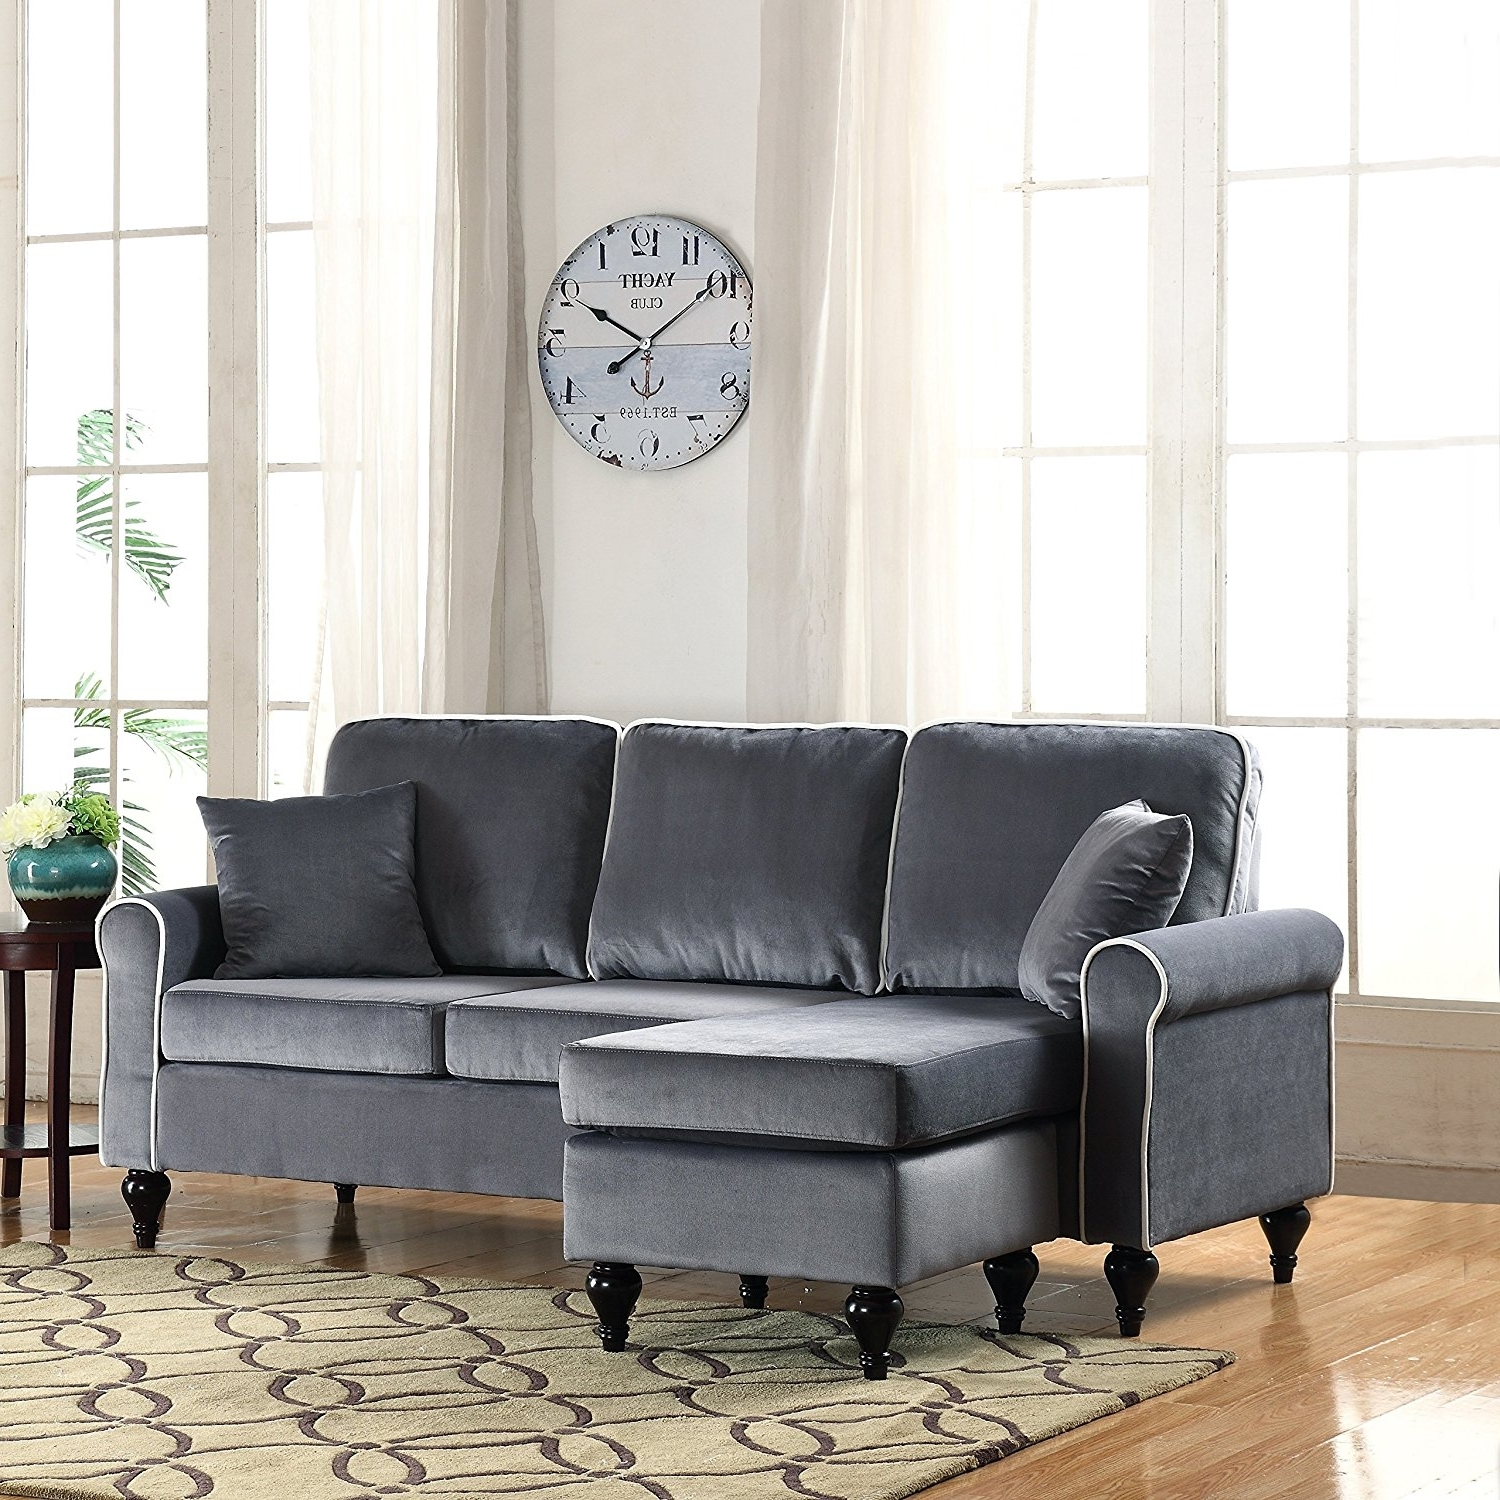 Amazon: Classic And Traditional Small Space Velvet Sectional For Recent Reversible Chaise Sofas (View 2 of 15)